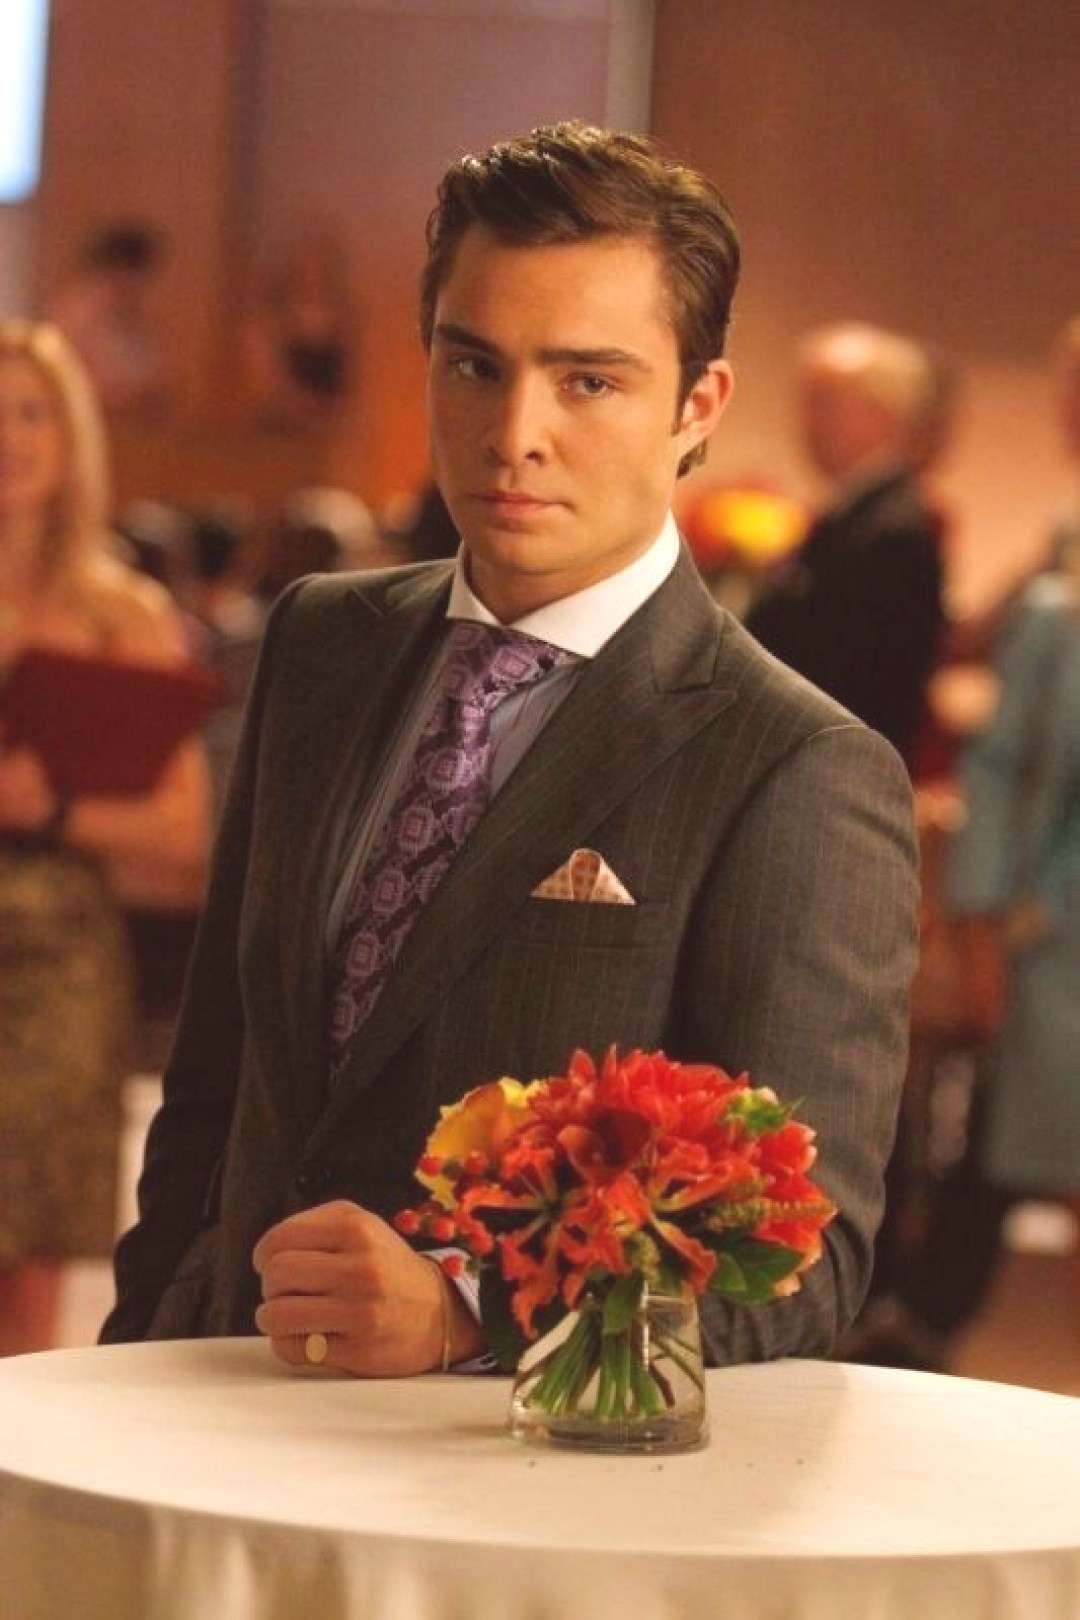 waldorf ♕ on Twitter quotchuck bass once said...… quot